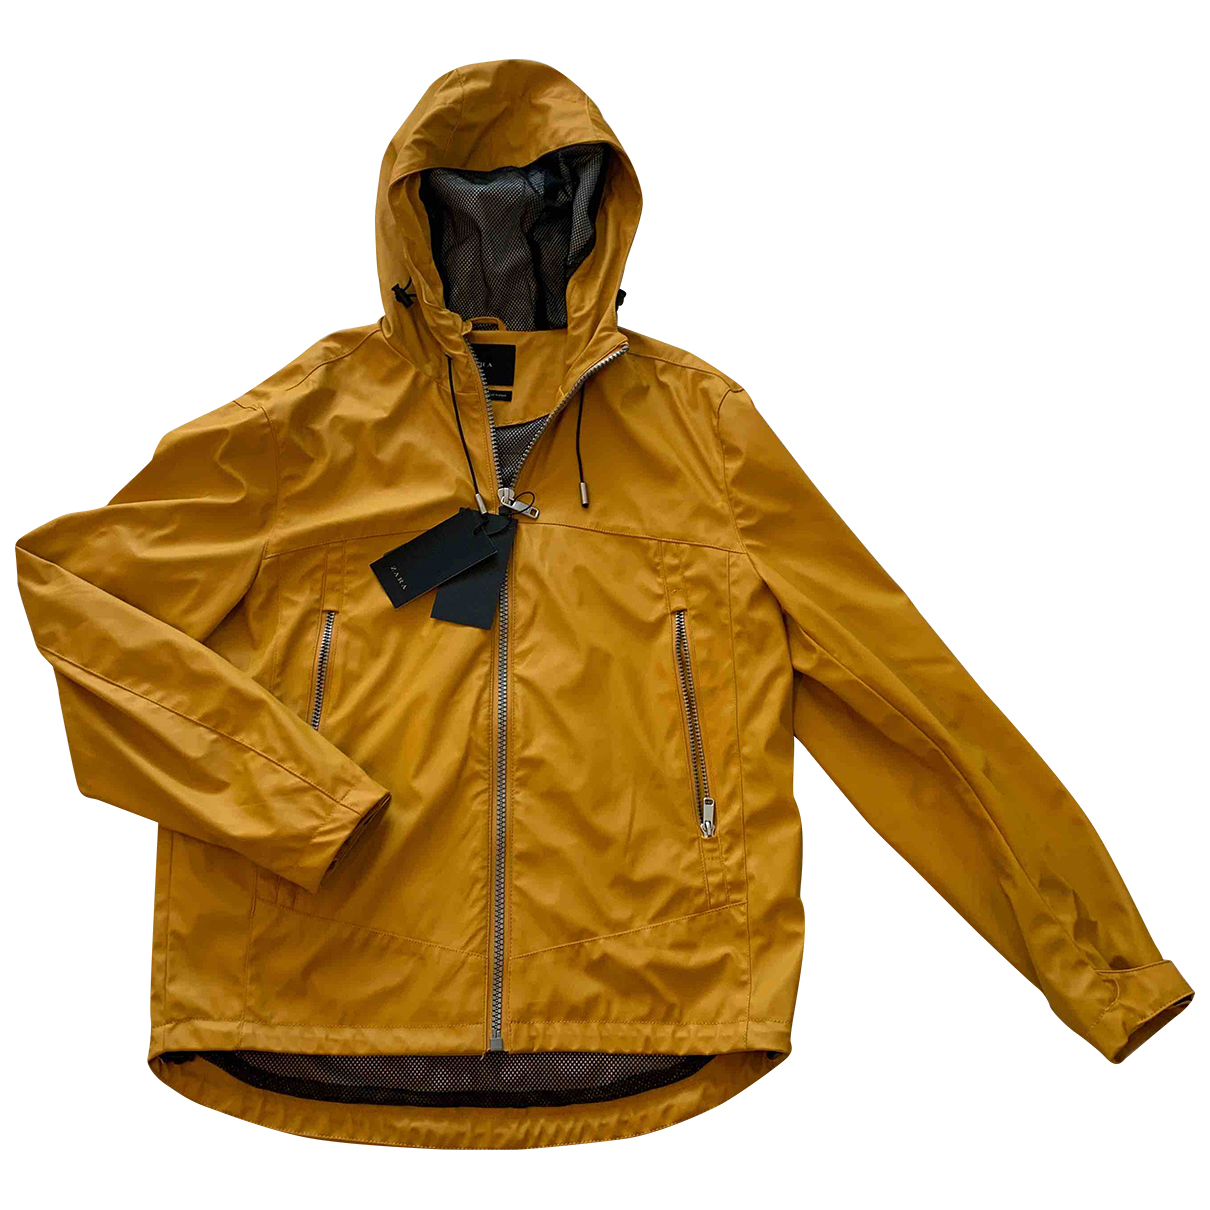 Zara \N Yellow jacket  for Men M International